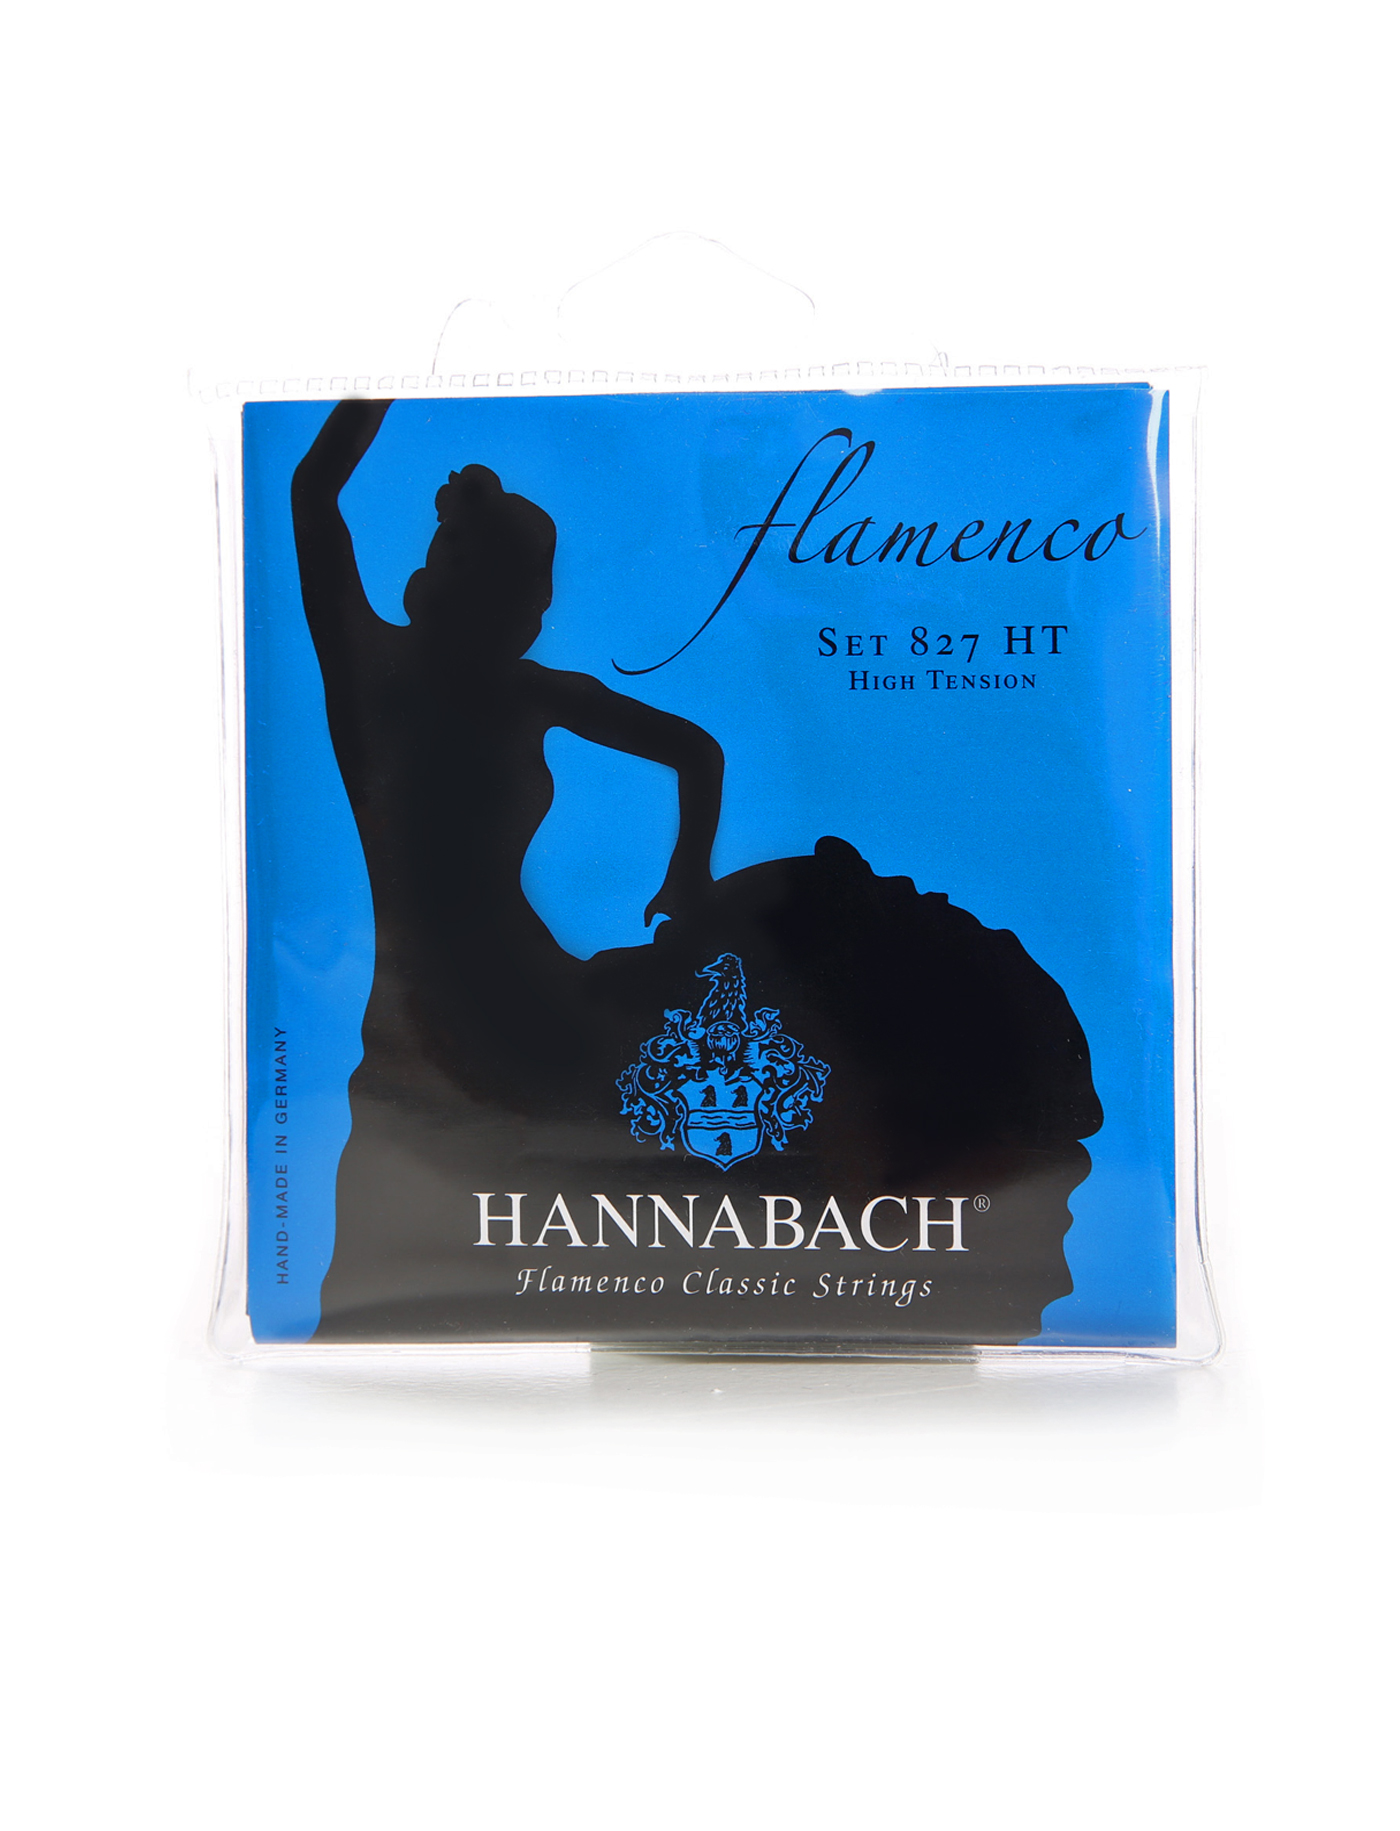 Flamenco guitar strings Hannabach 827HT high tension